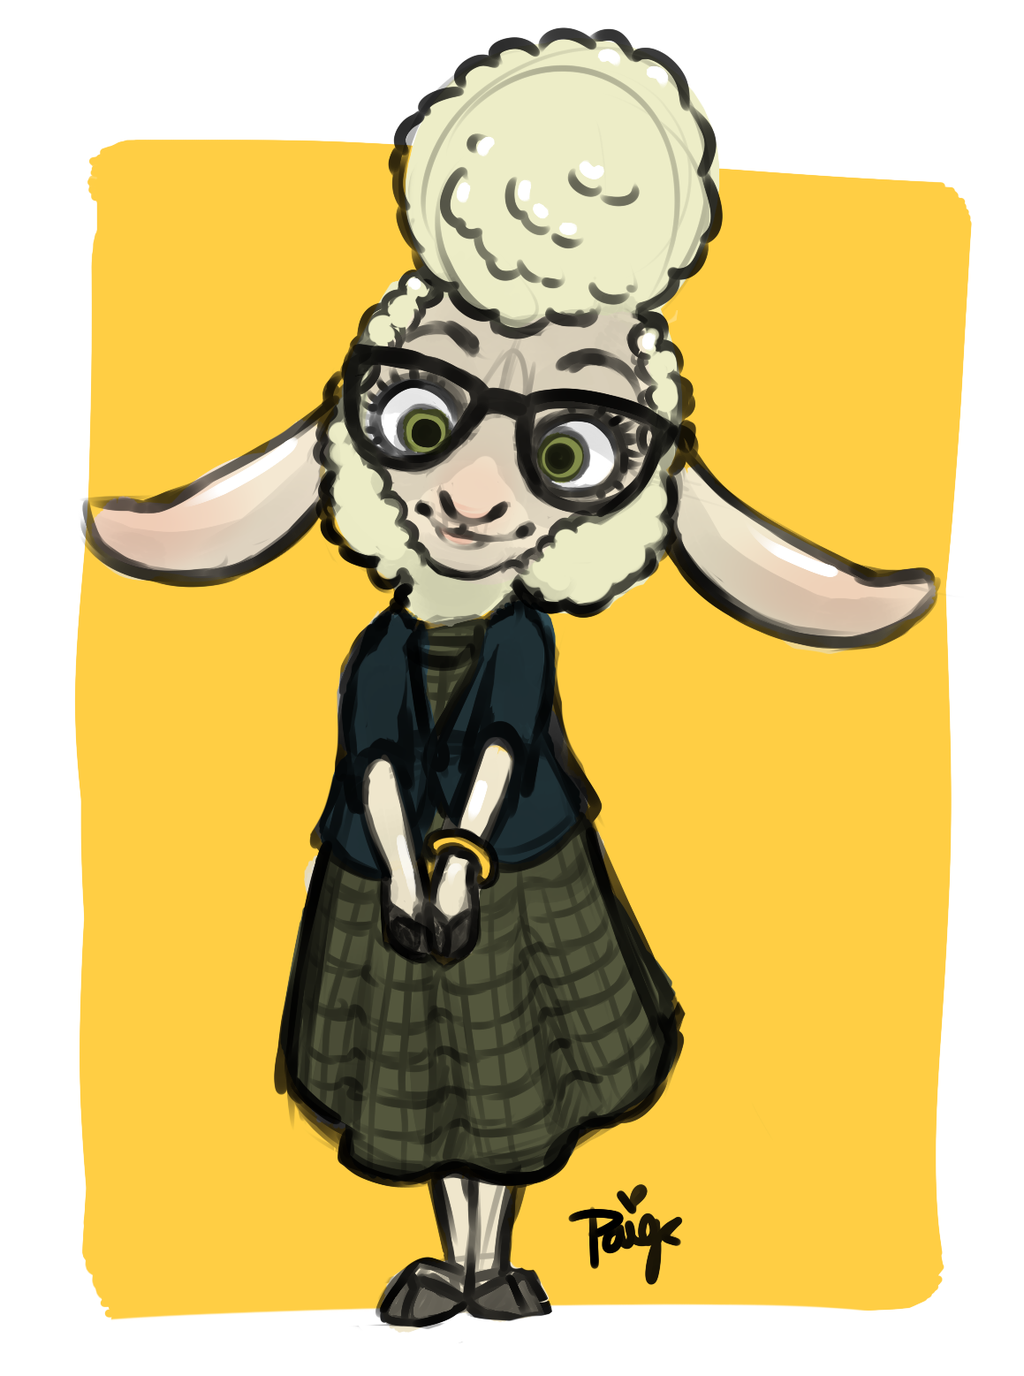 Assistant Bellwether by SanzaOmega on DeviantArt.